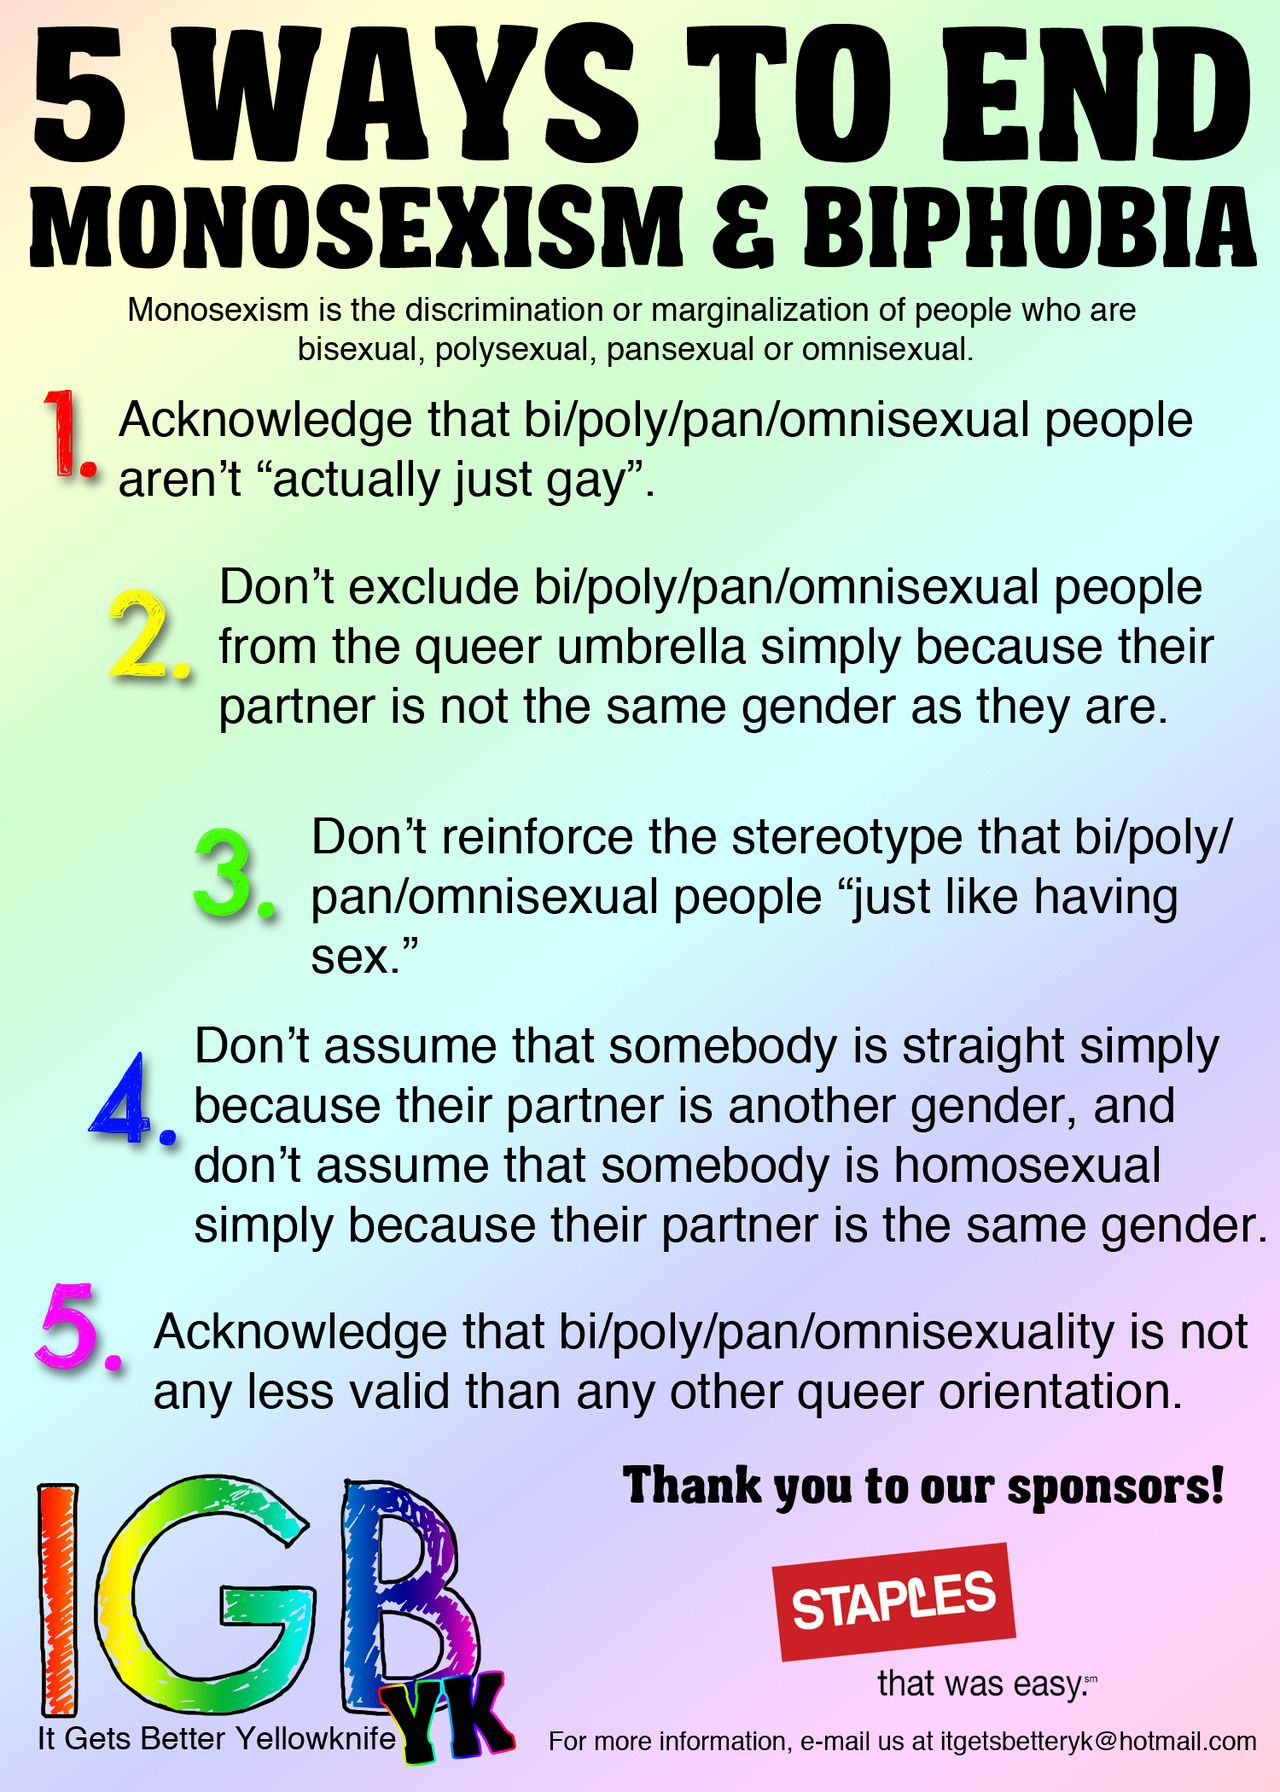 5 Ways to End Monosexism & Biphobia